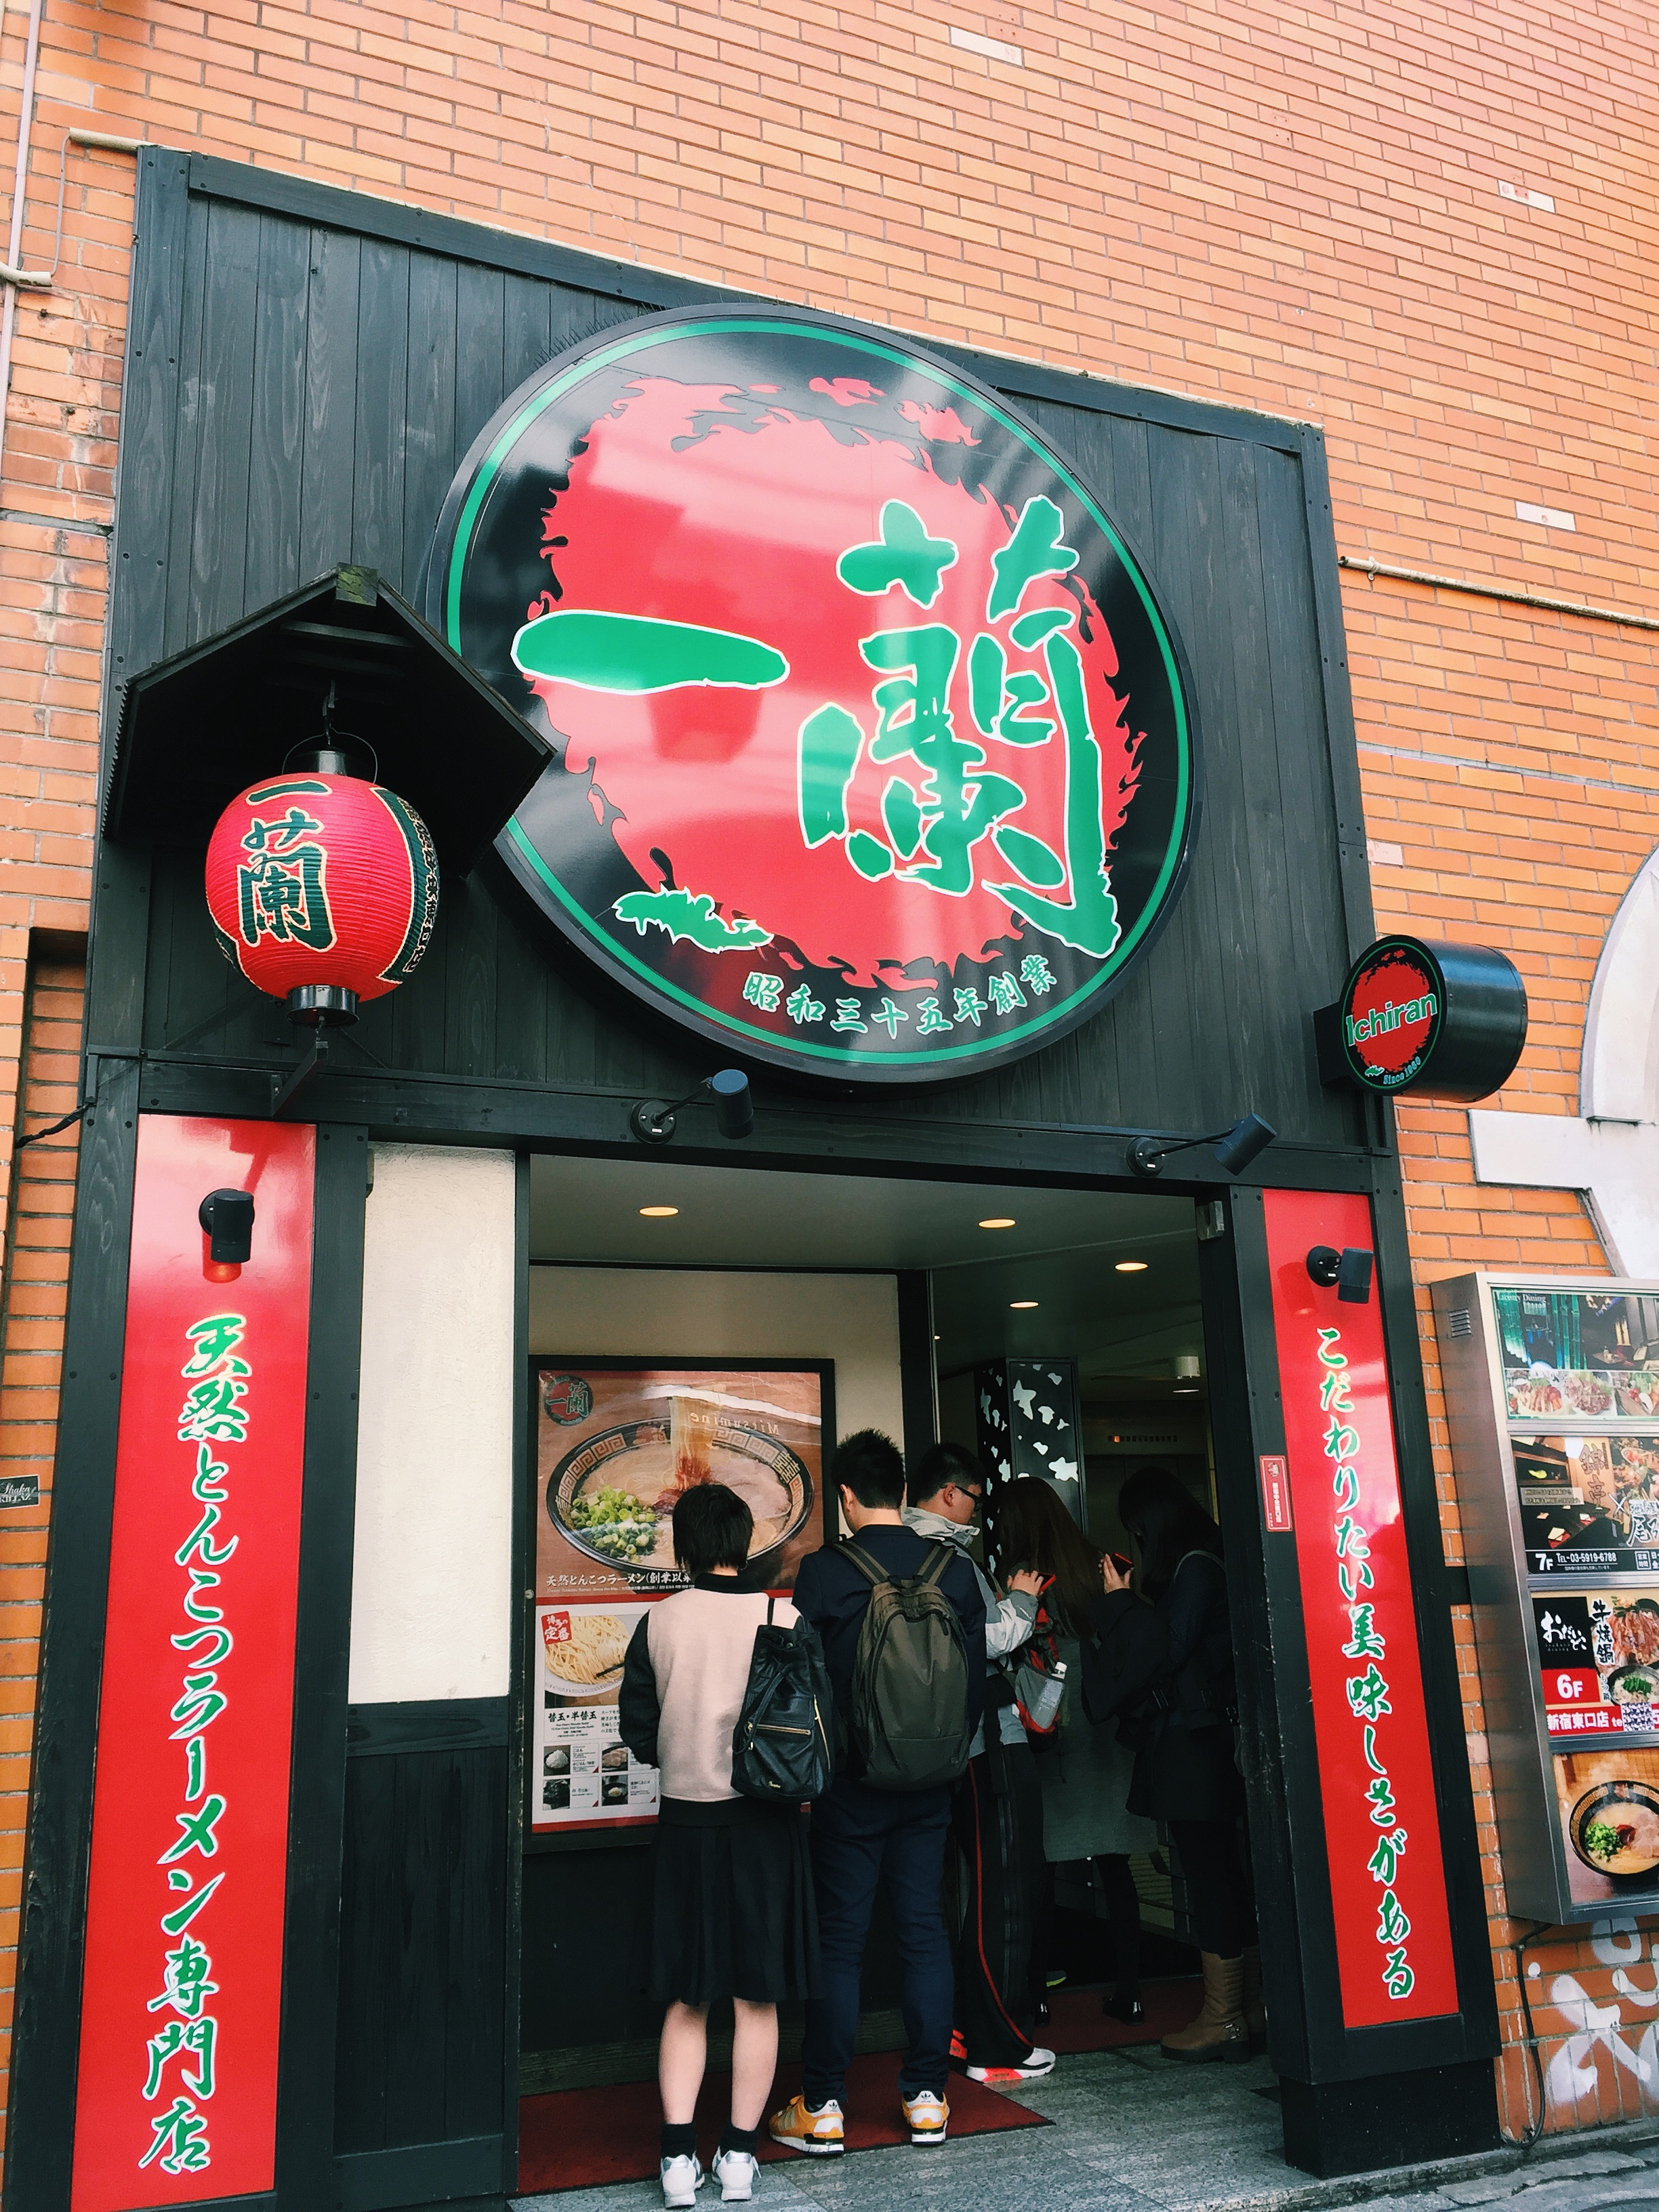 Ichiran's iconography set rendered in its recognizable red, green, and black color scheme